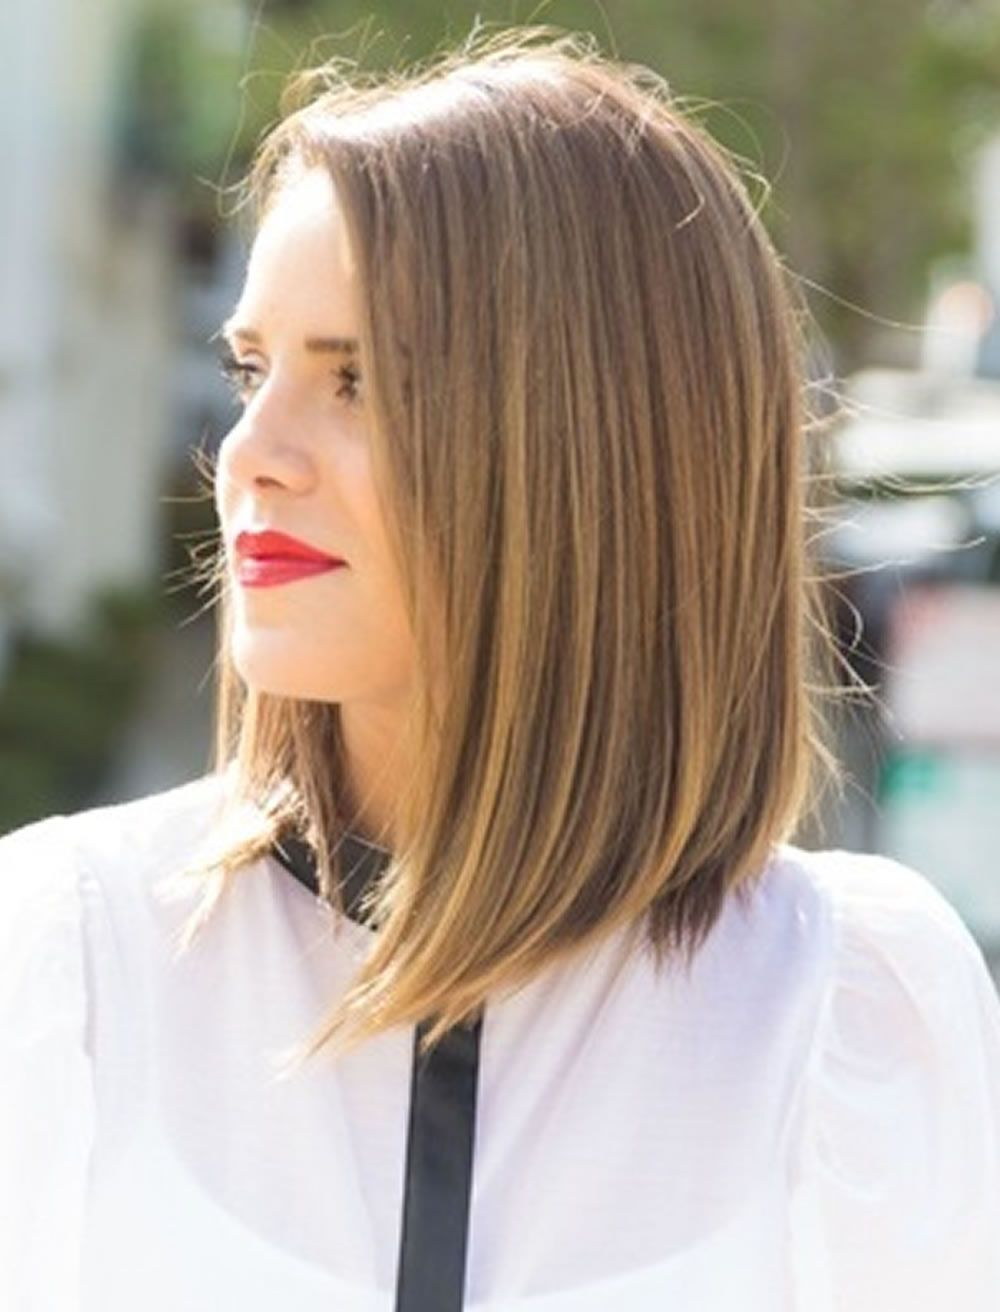 2018 short haircut trends and short hairstyle ideas for women